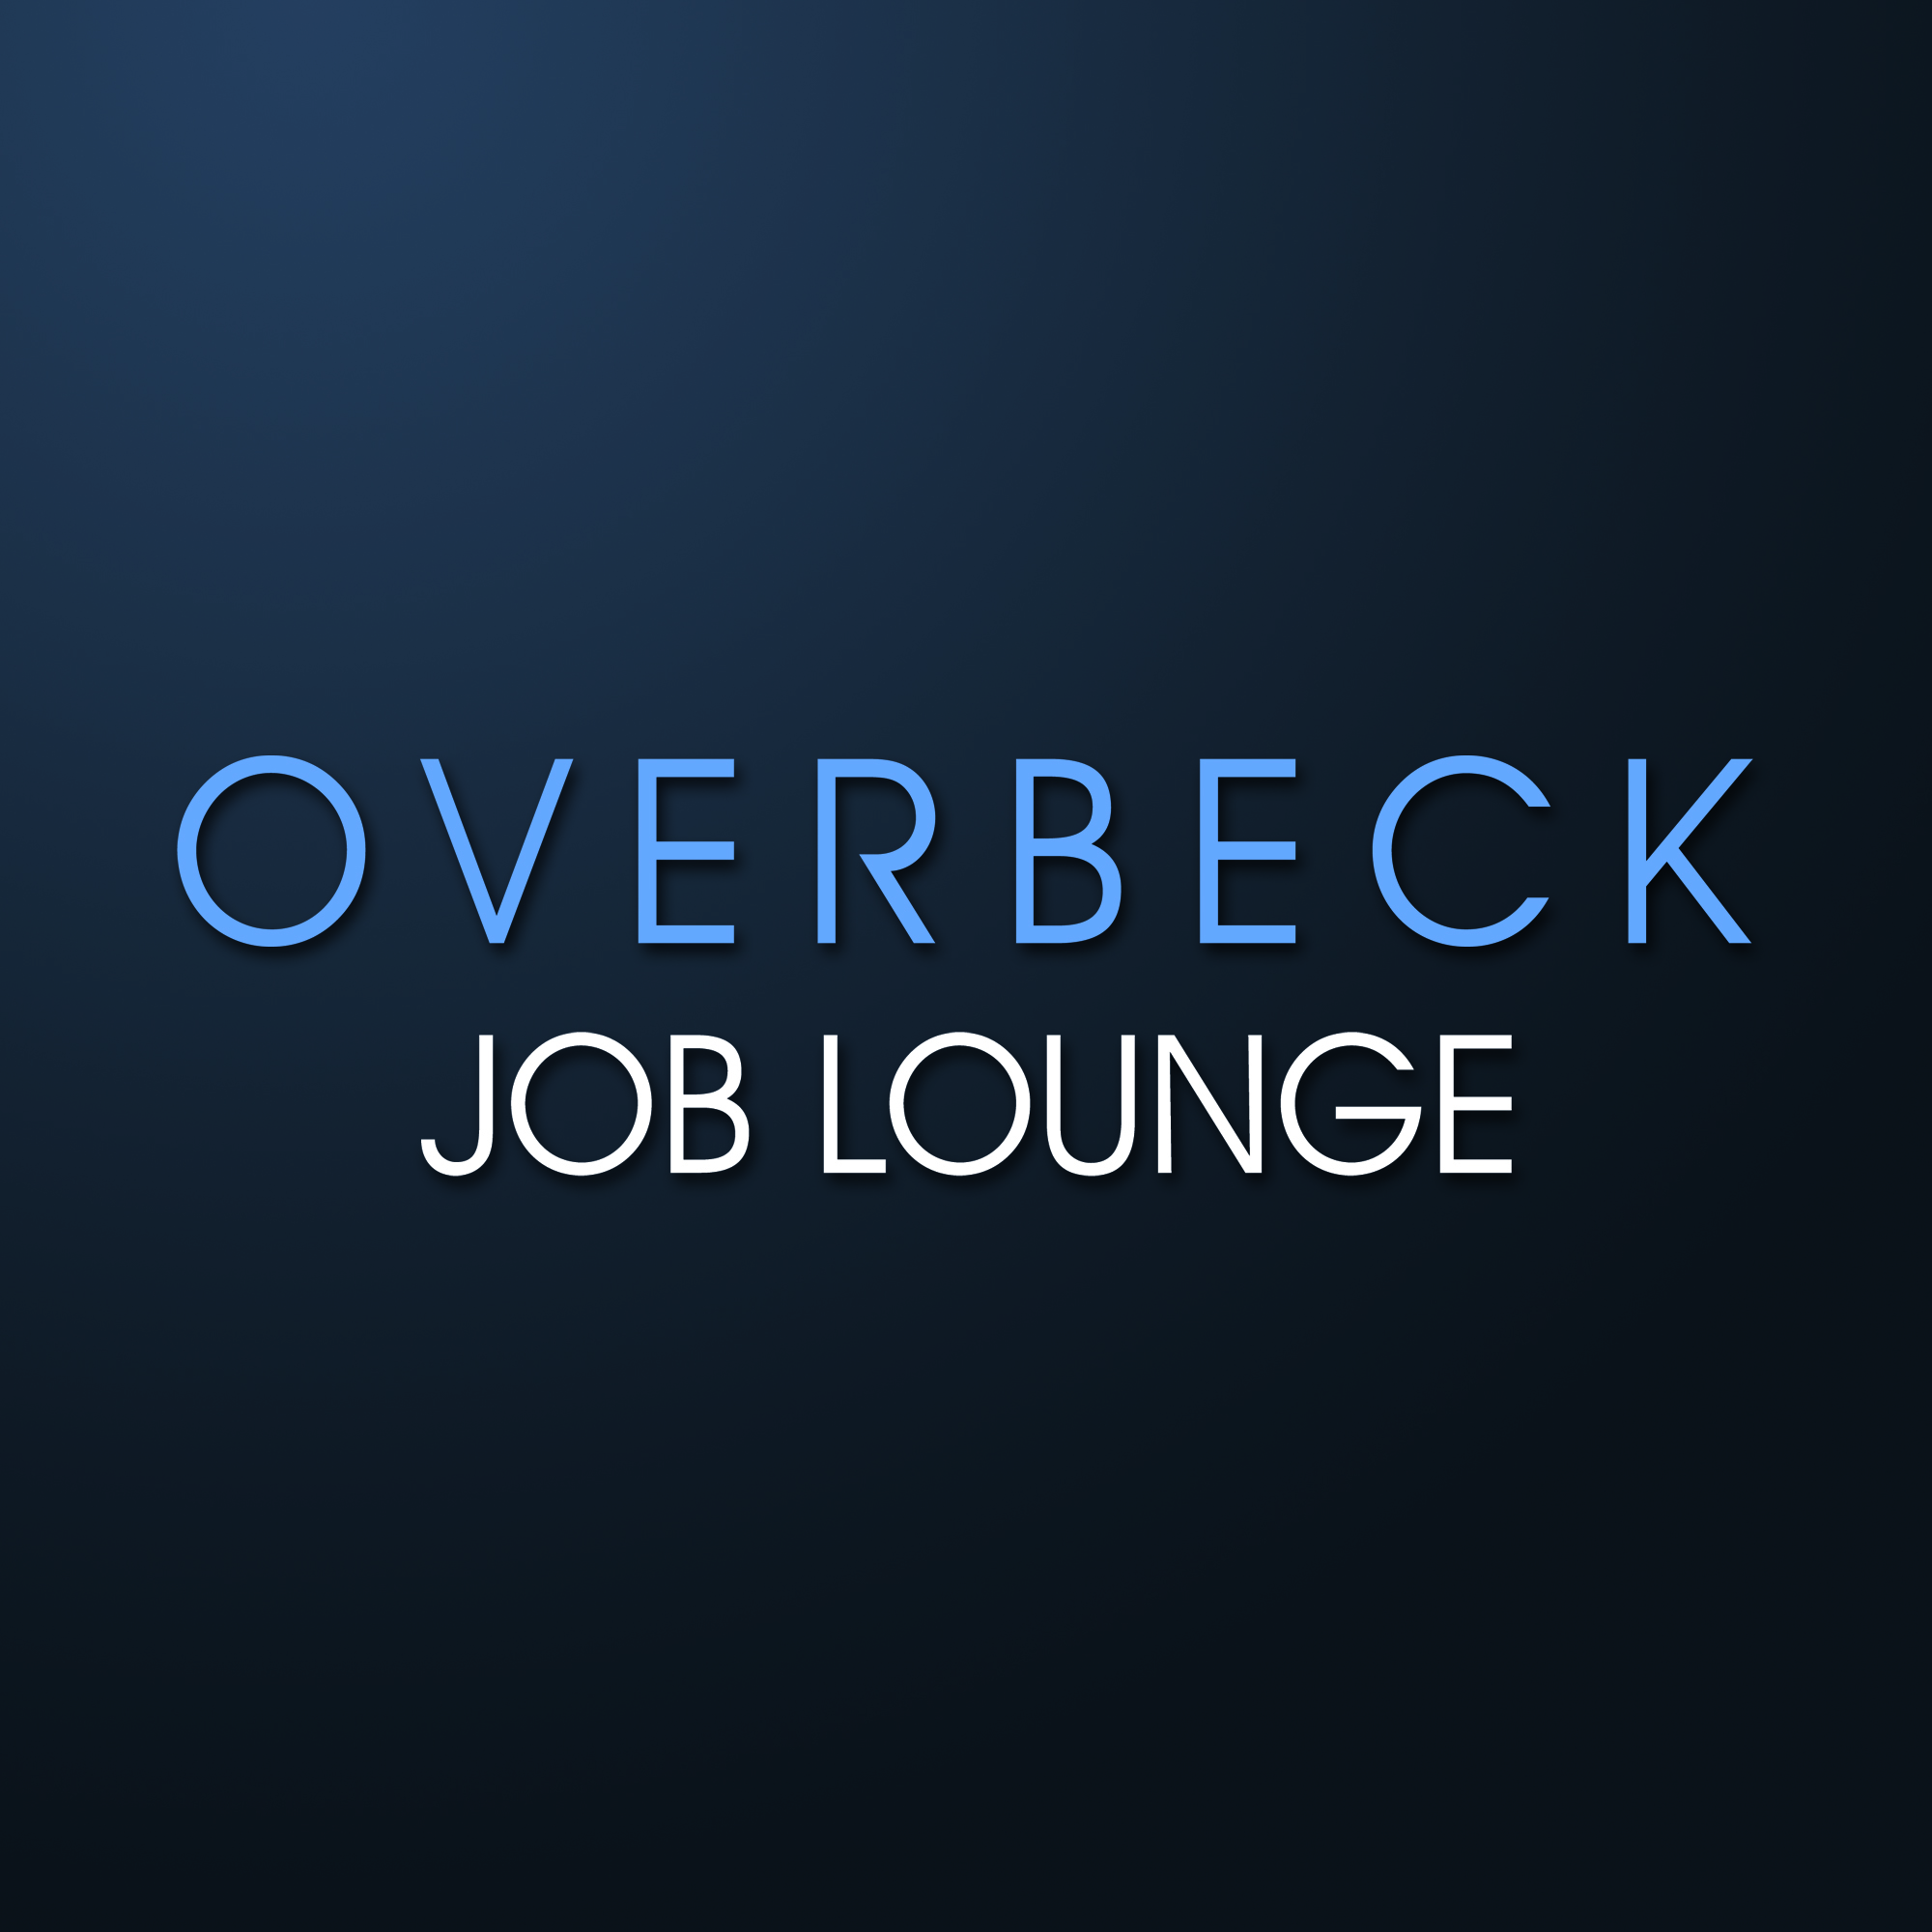 OVERBECK Job Lounge